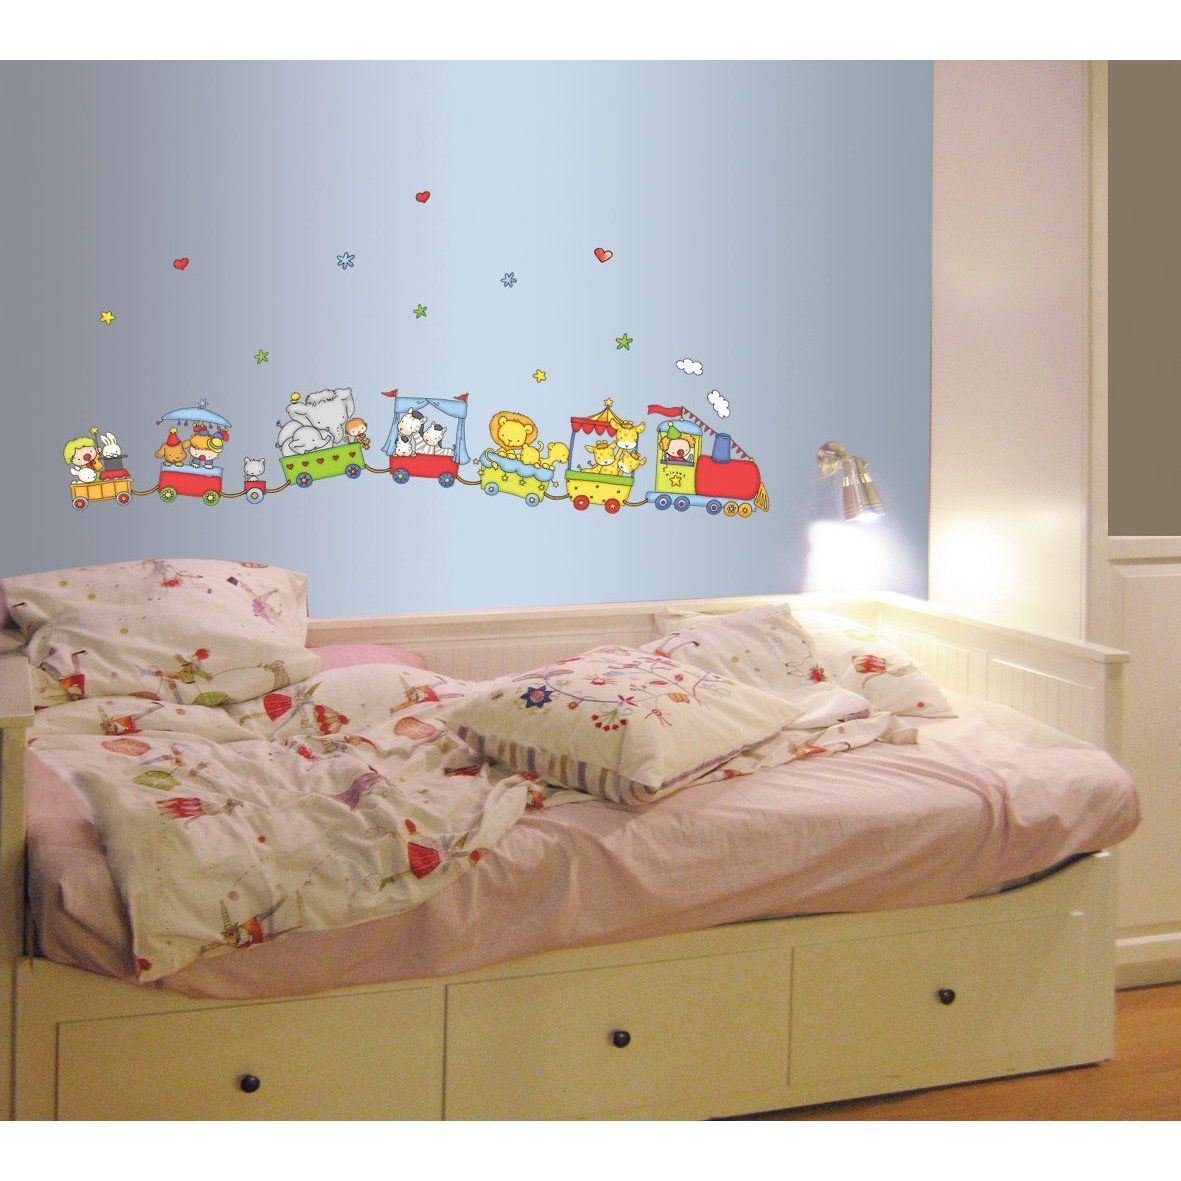 Baby nursery cute kids bedroom designing ideas with lovely train baby nursery cute kids bedroom designing ideas with lovely train wall decals in colorful nuance amipublicfo Gallery